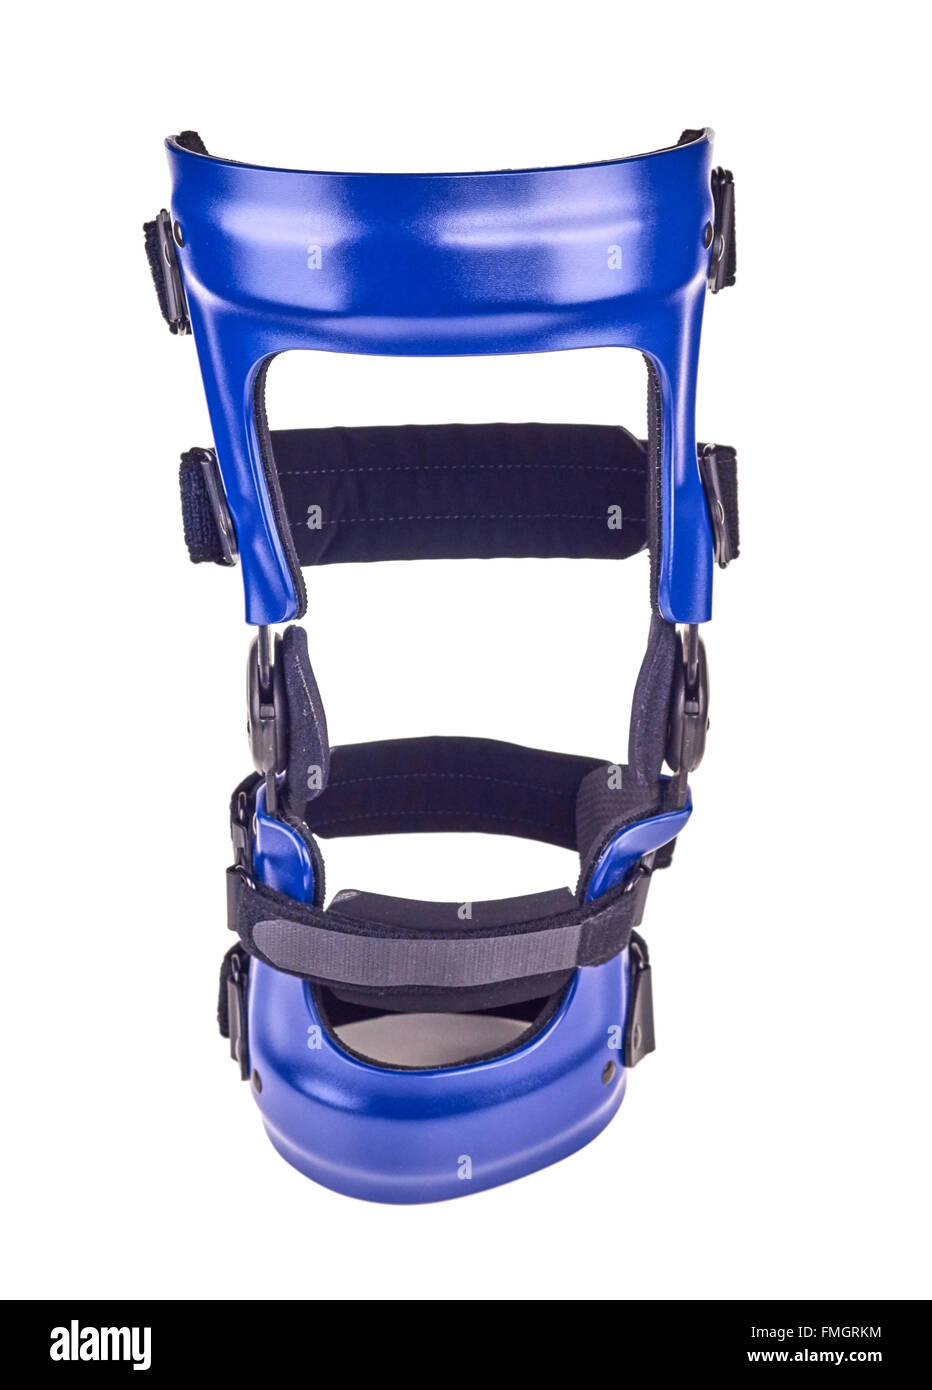 Blue rigged knee brace isolated over white. - Stock Image